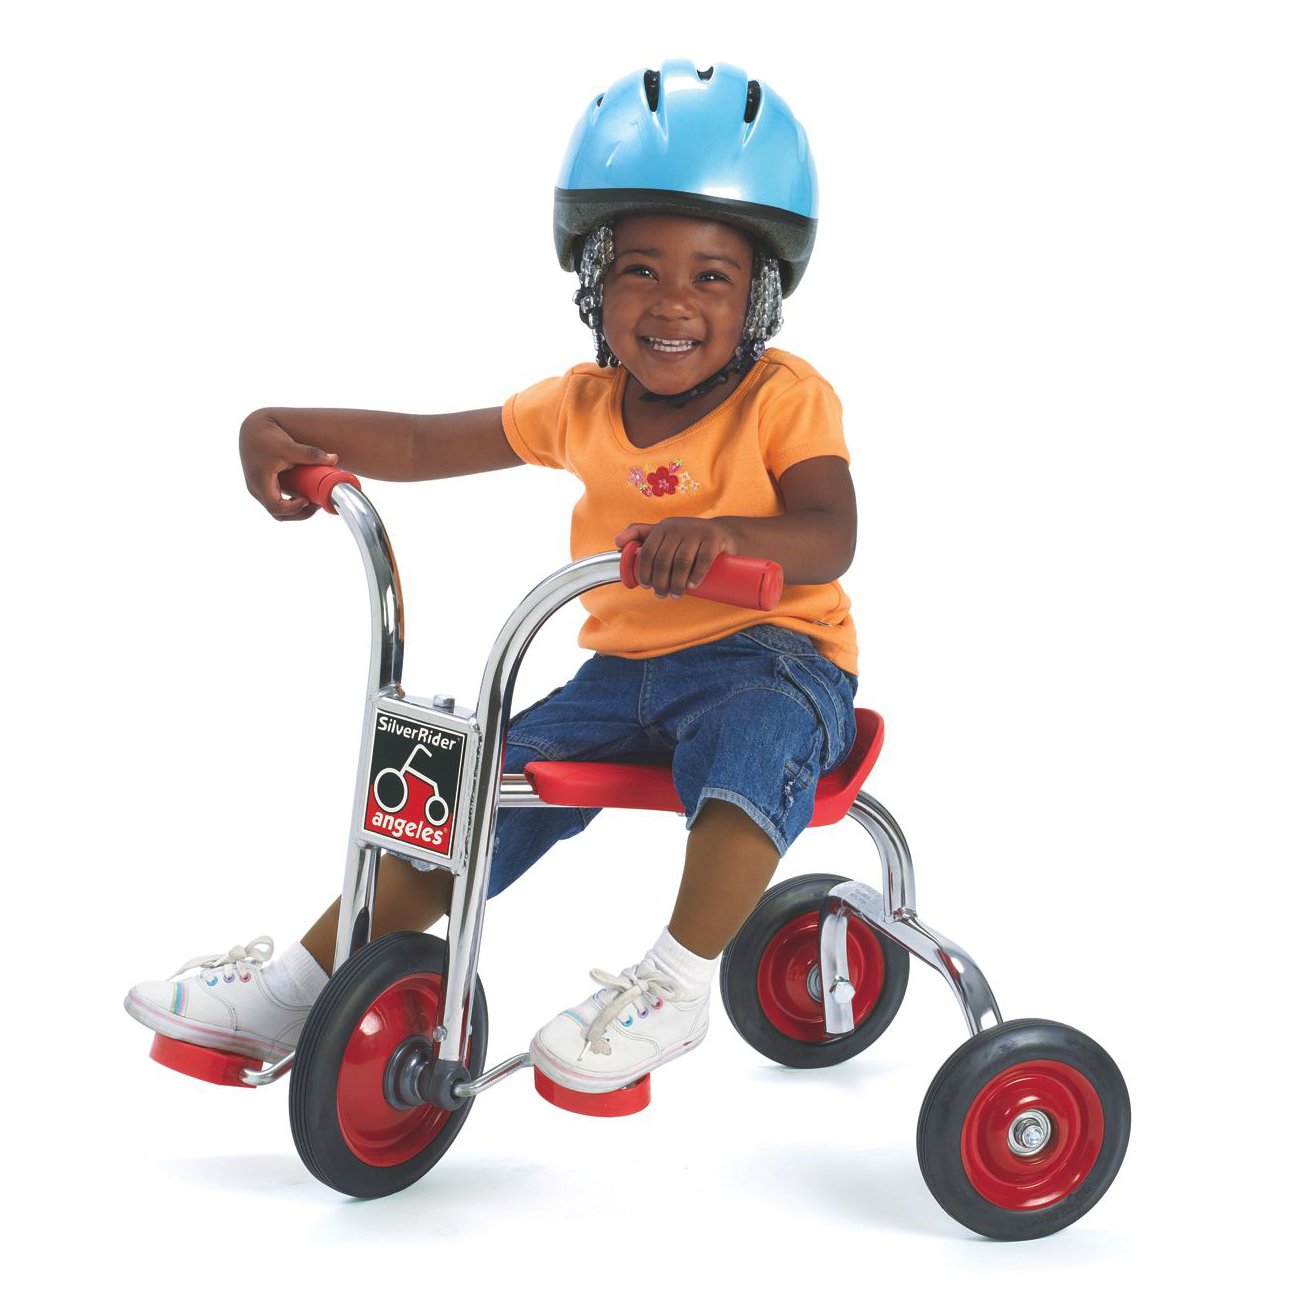 Angeles Silverrider 8 Quot Pedal Pusher Toddler Trike Aaa